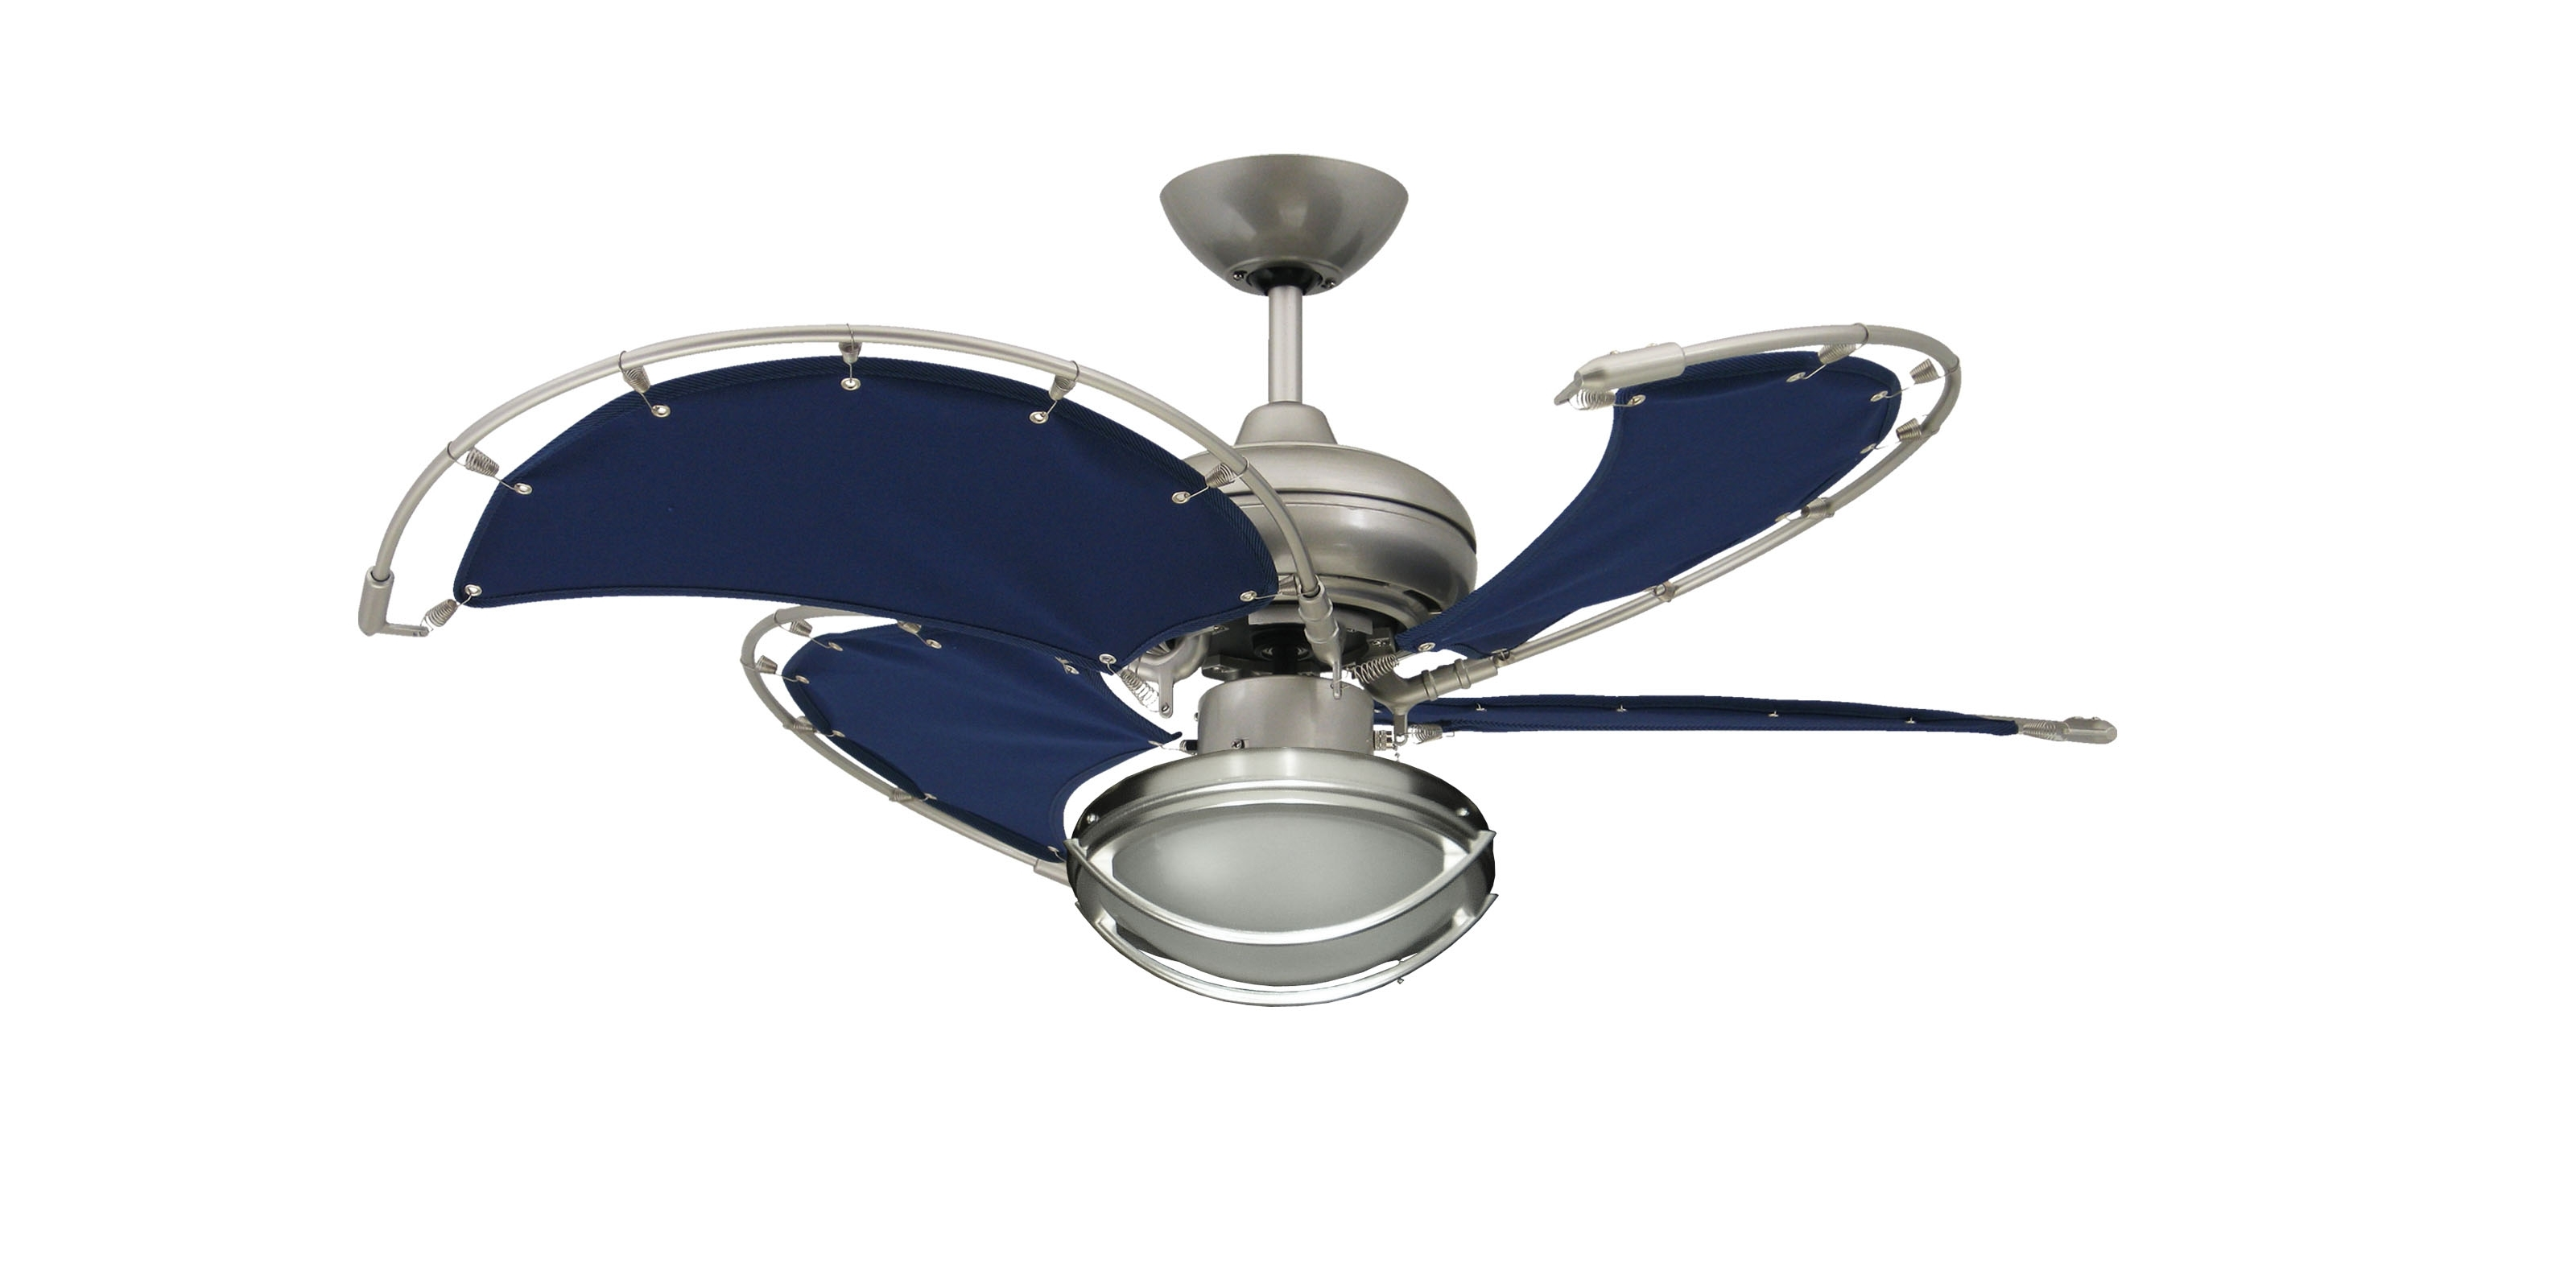 Awesome Outdoor Brushed Nickel Ceiling Fan Is Rated For Damp For Famous Brushed Nickel Outdoor Ceiling Fans (View 2 of 20)